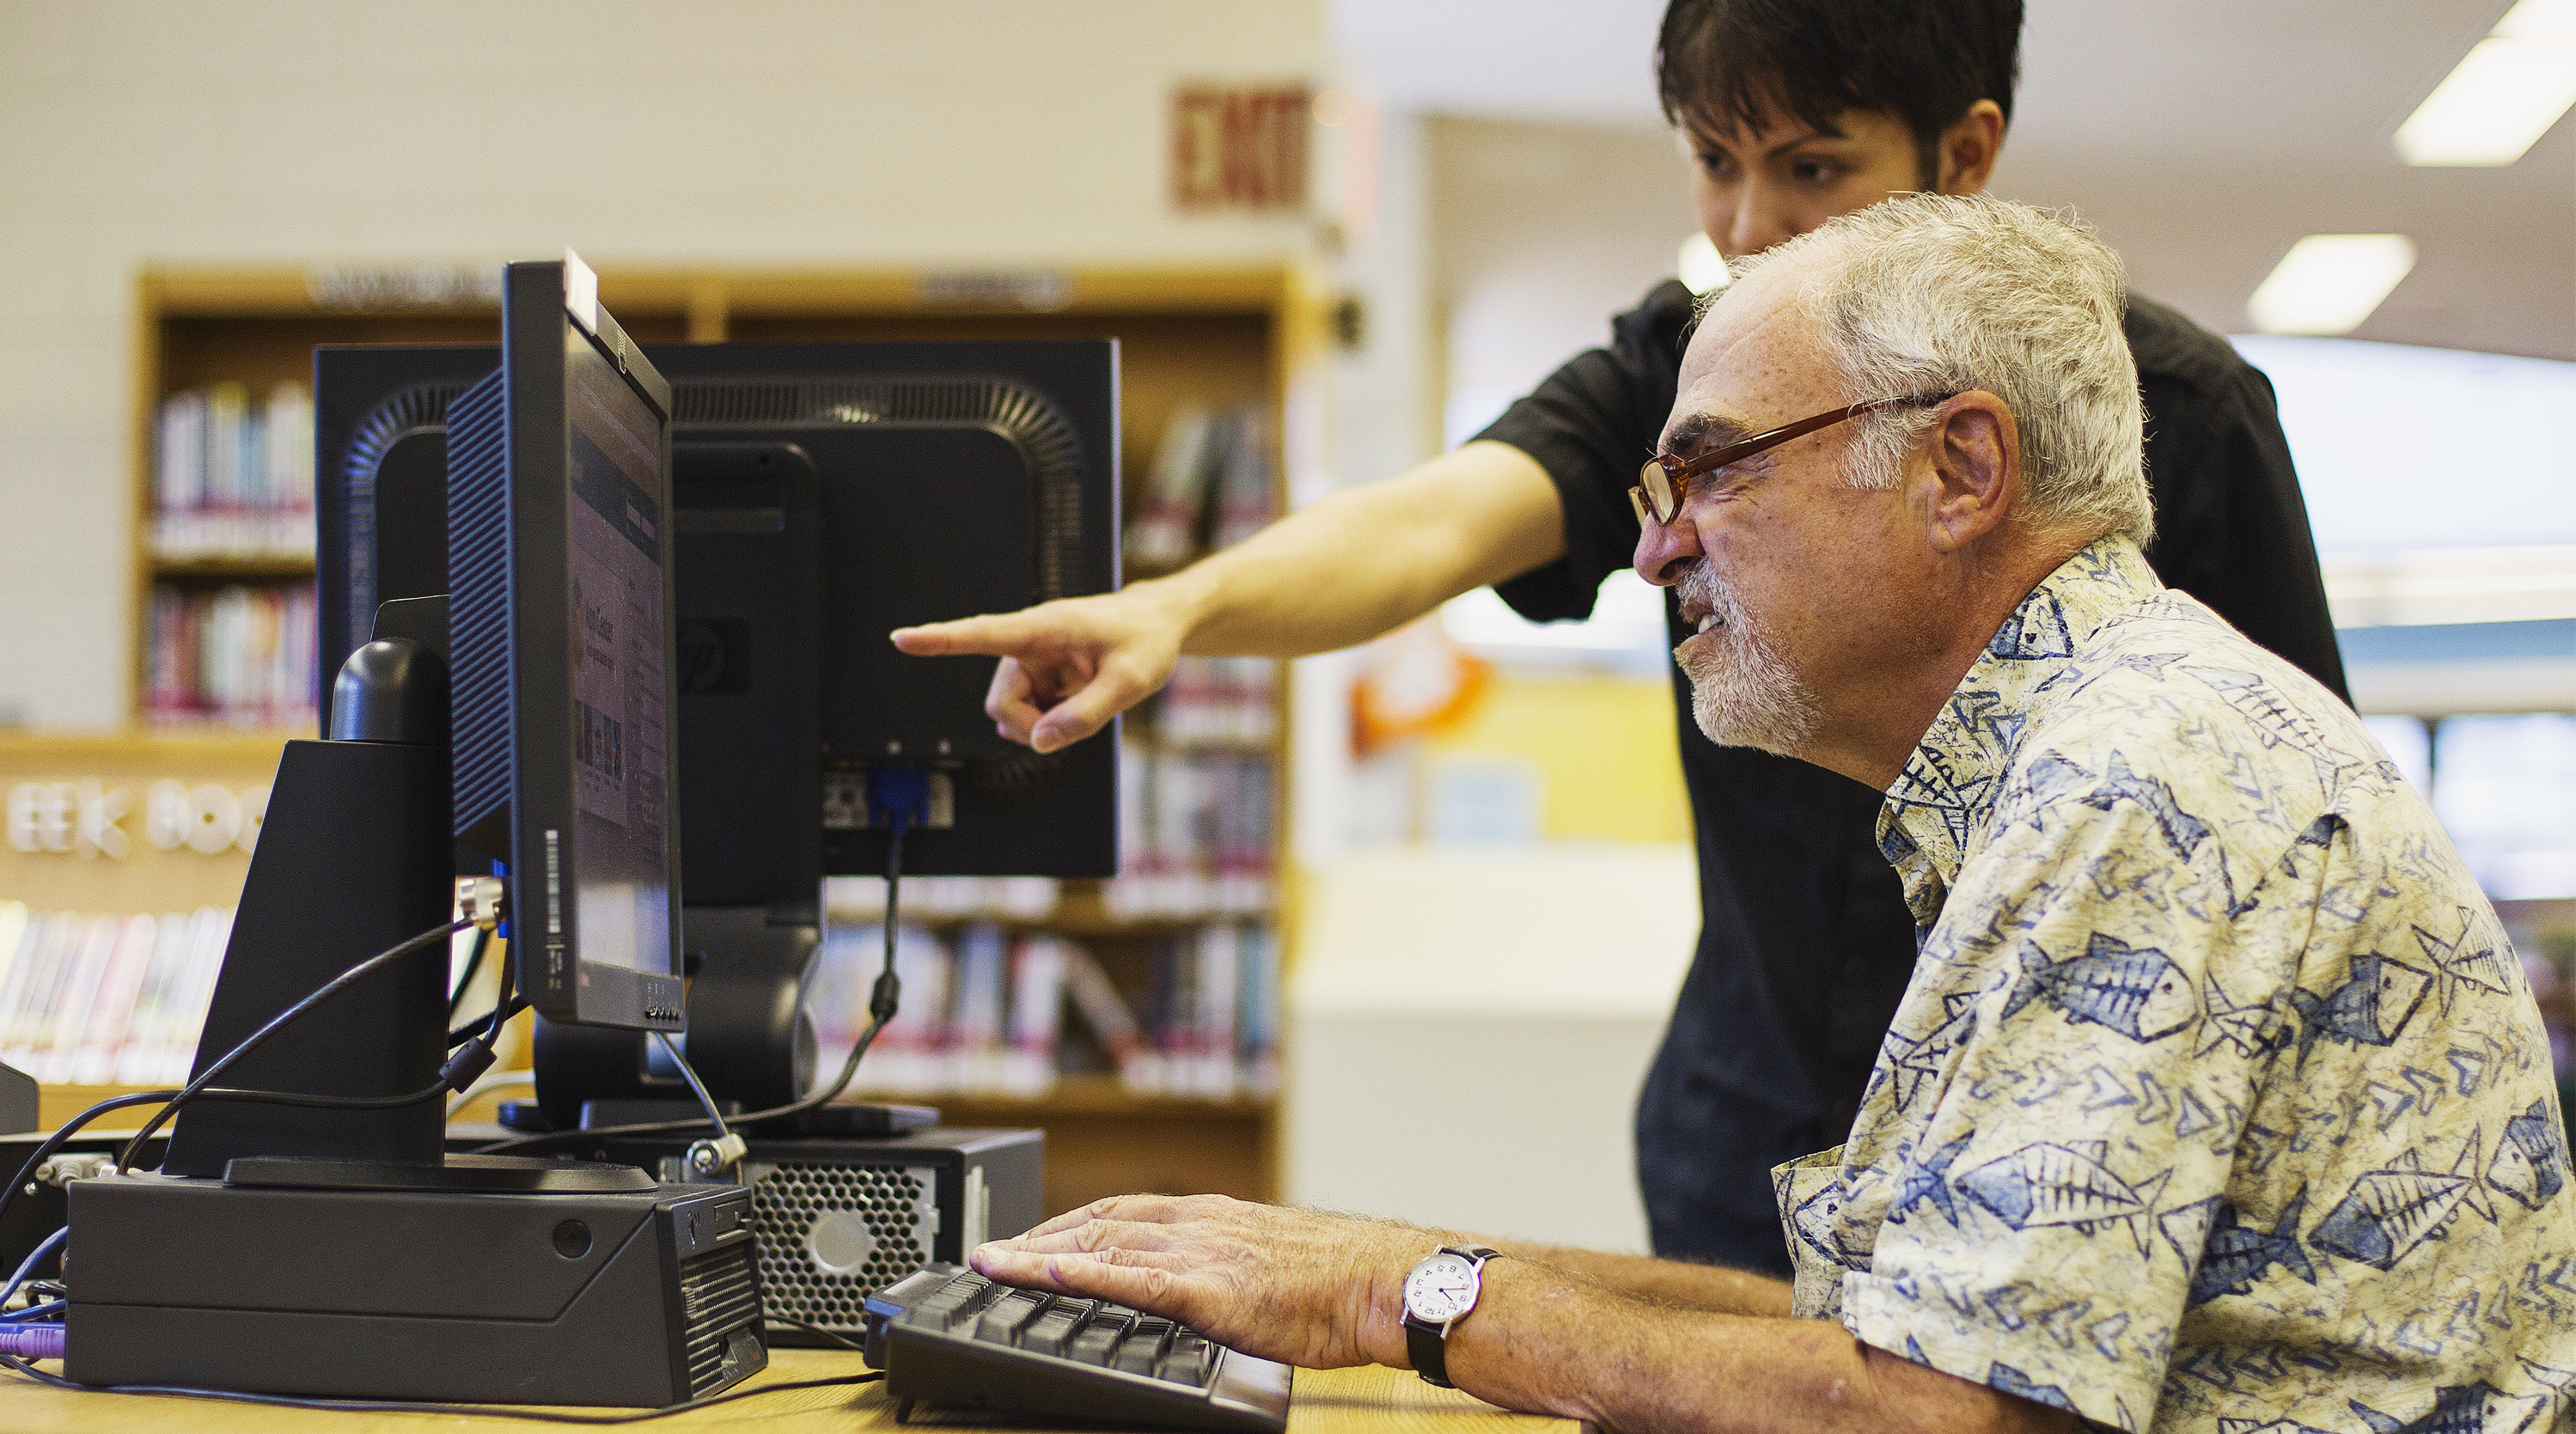 A librarian teaches a senior citizen how to use a Facebook account during a class at a branch of the New York Public Library in New York